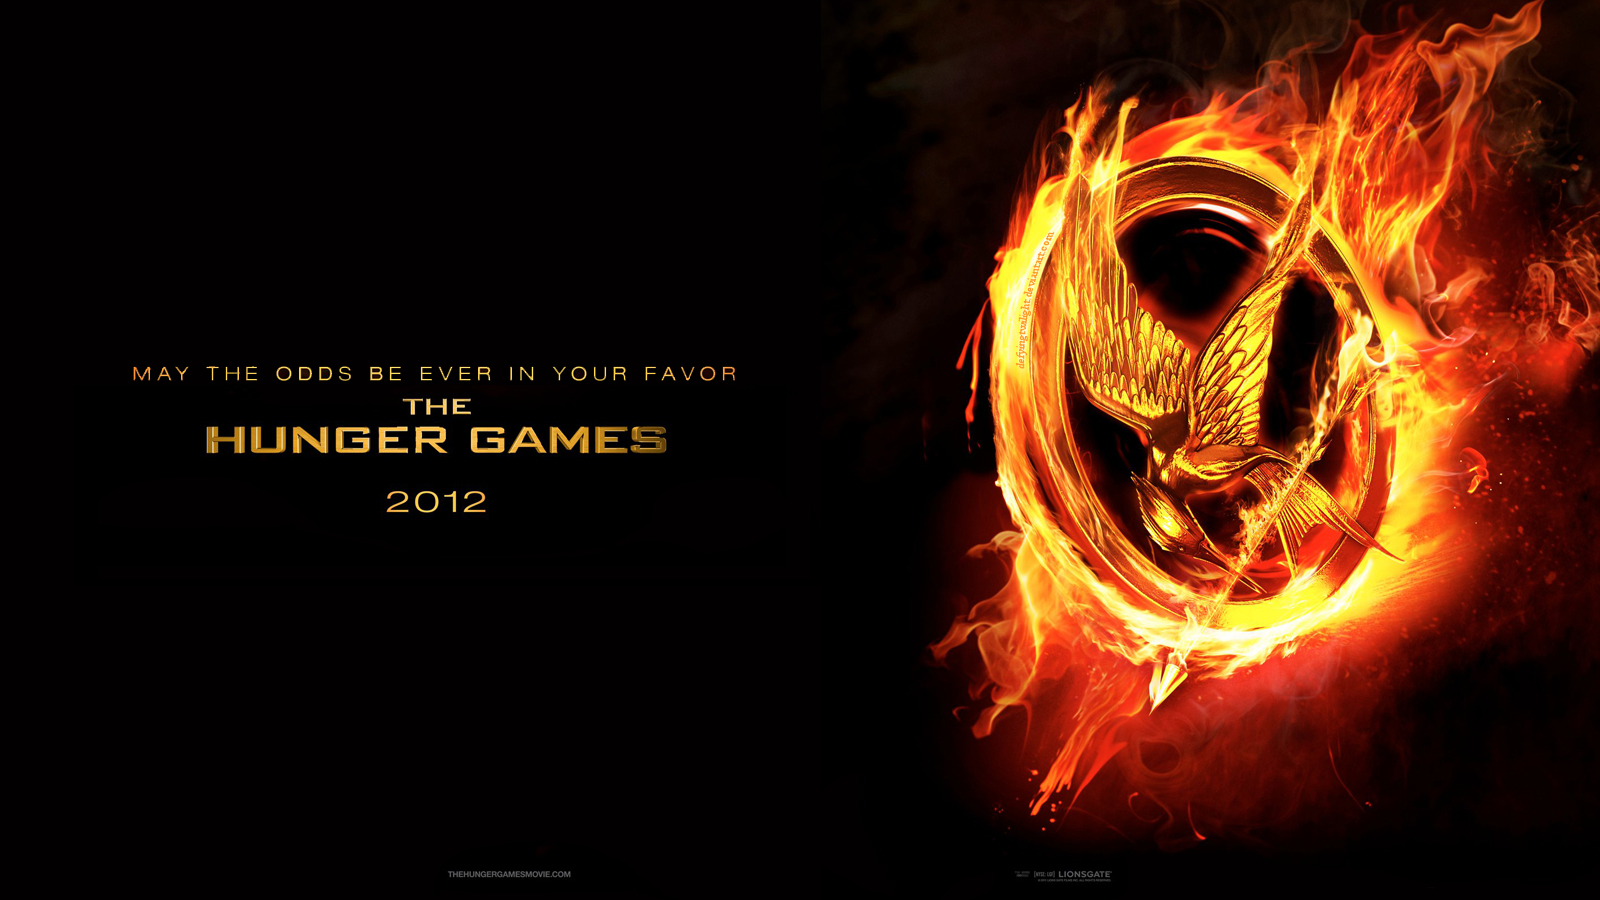 The Hunger Games Home - The Hunger Games